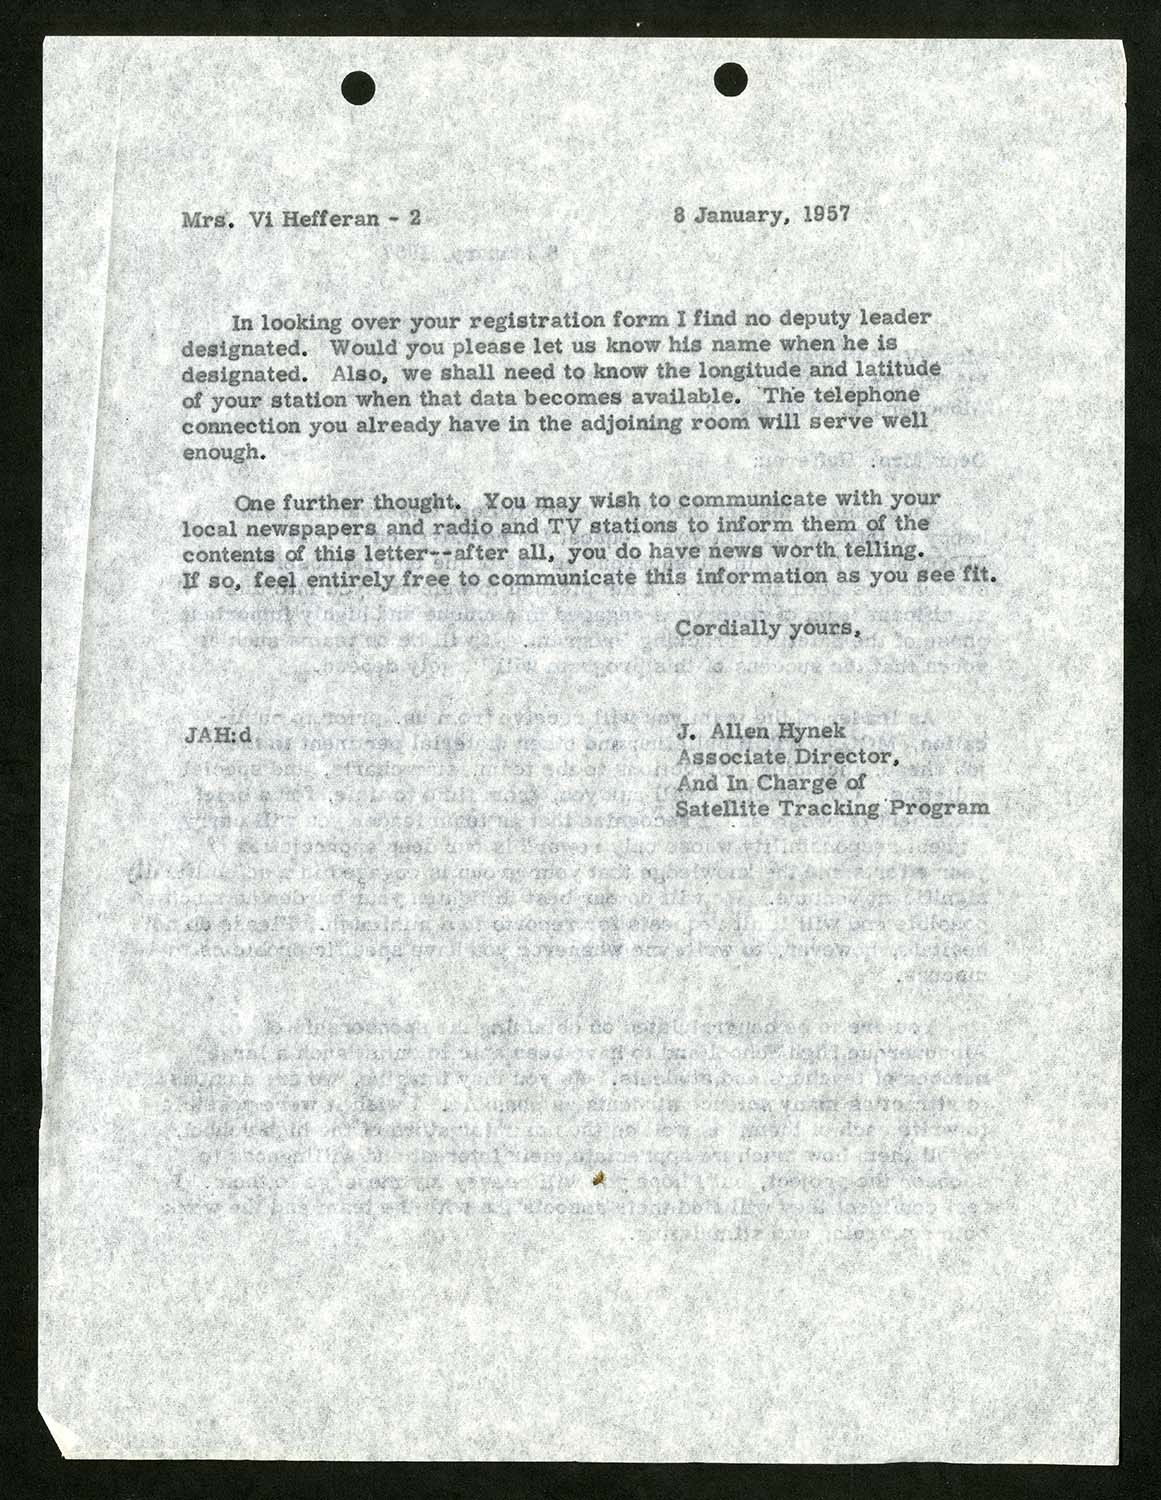 Typed letter, dated 6 January, 1957 and addressed to Mrs. Vi Hefferan. The second page of the letter